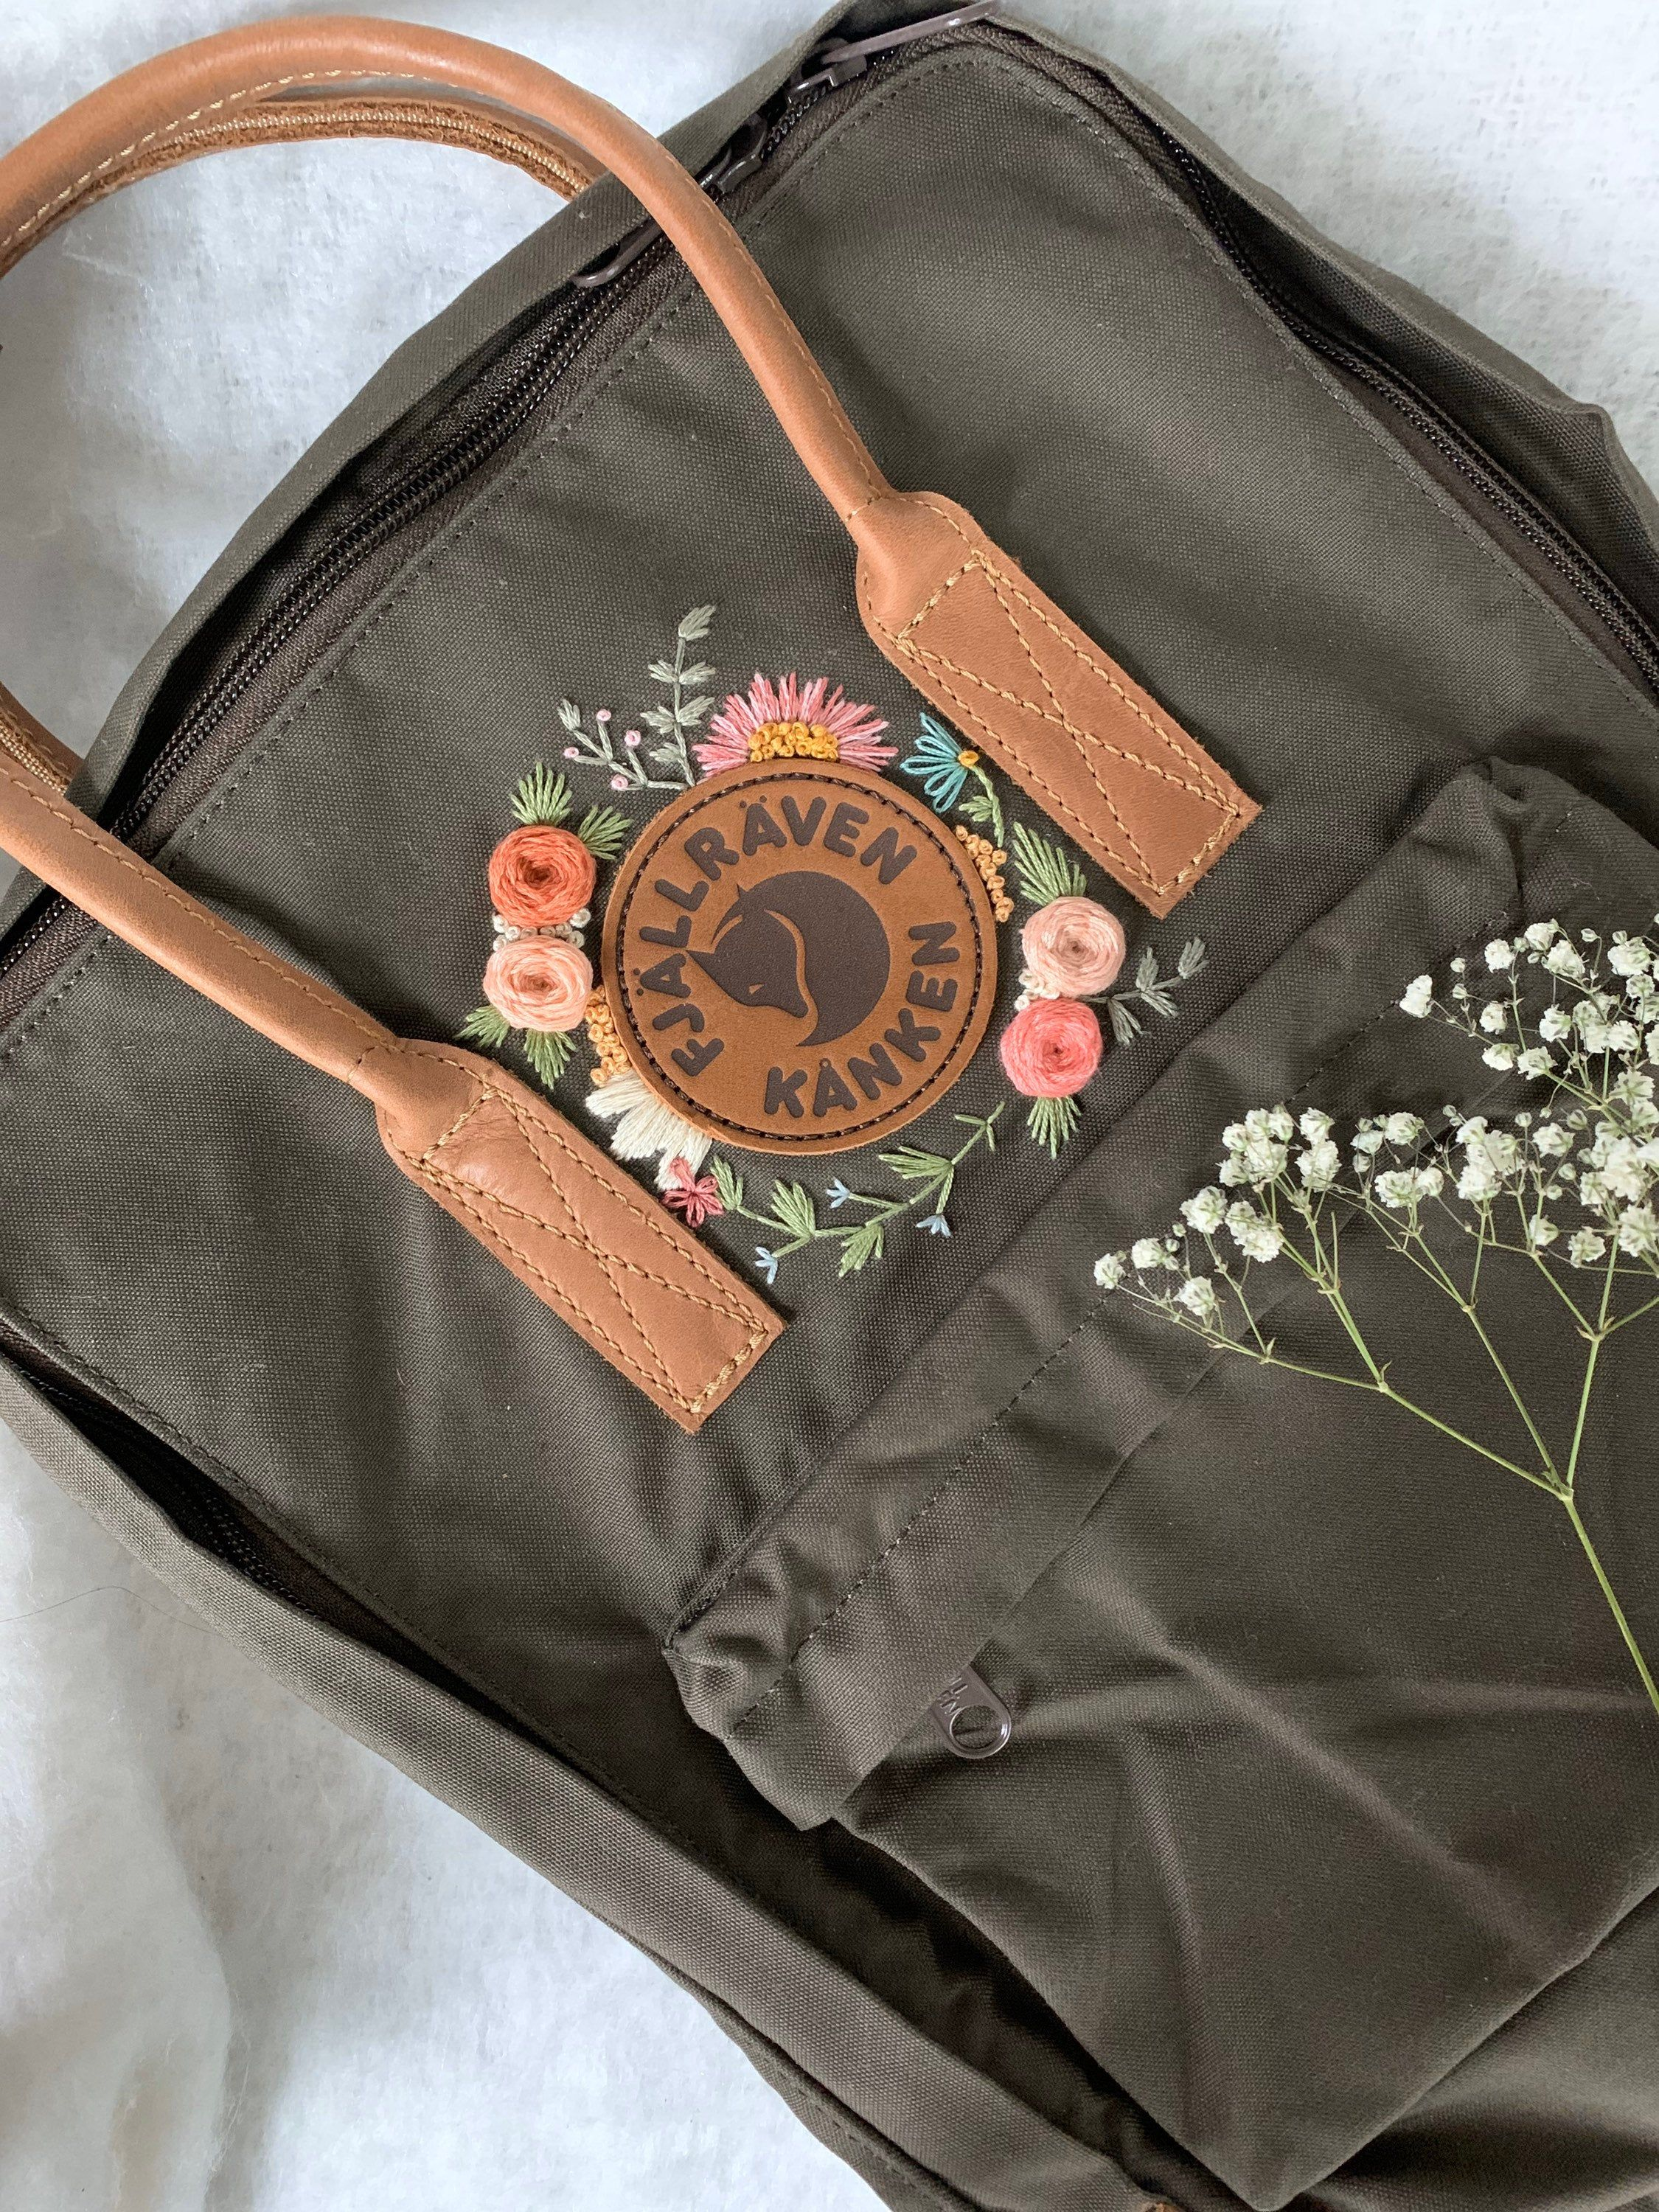 Fjallraven Kanken No. 2 Backpack - Custom Hand Embroidery - Boho Bespoke - Classic No. 2 Colors - Unique Embroidery - G 1000 Material